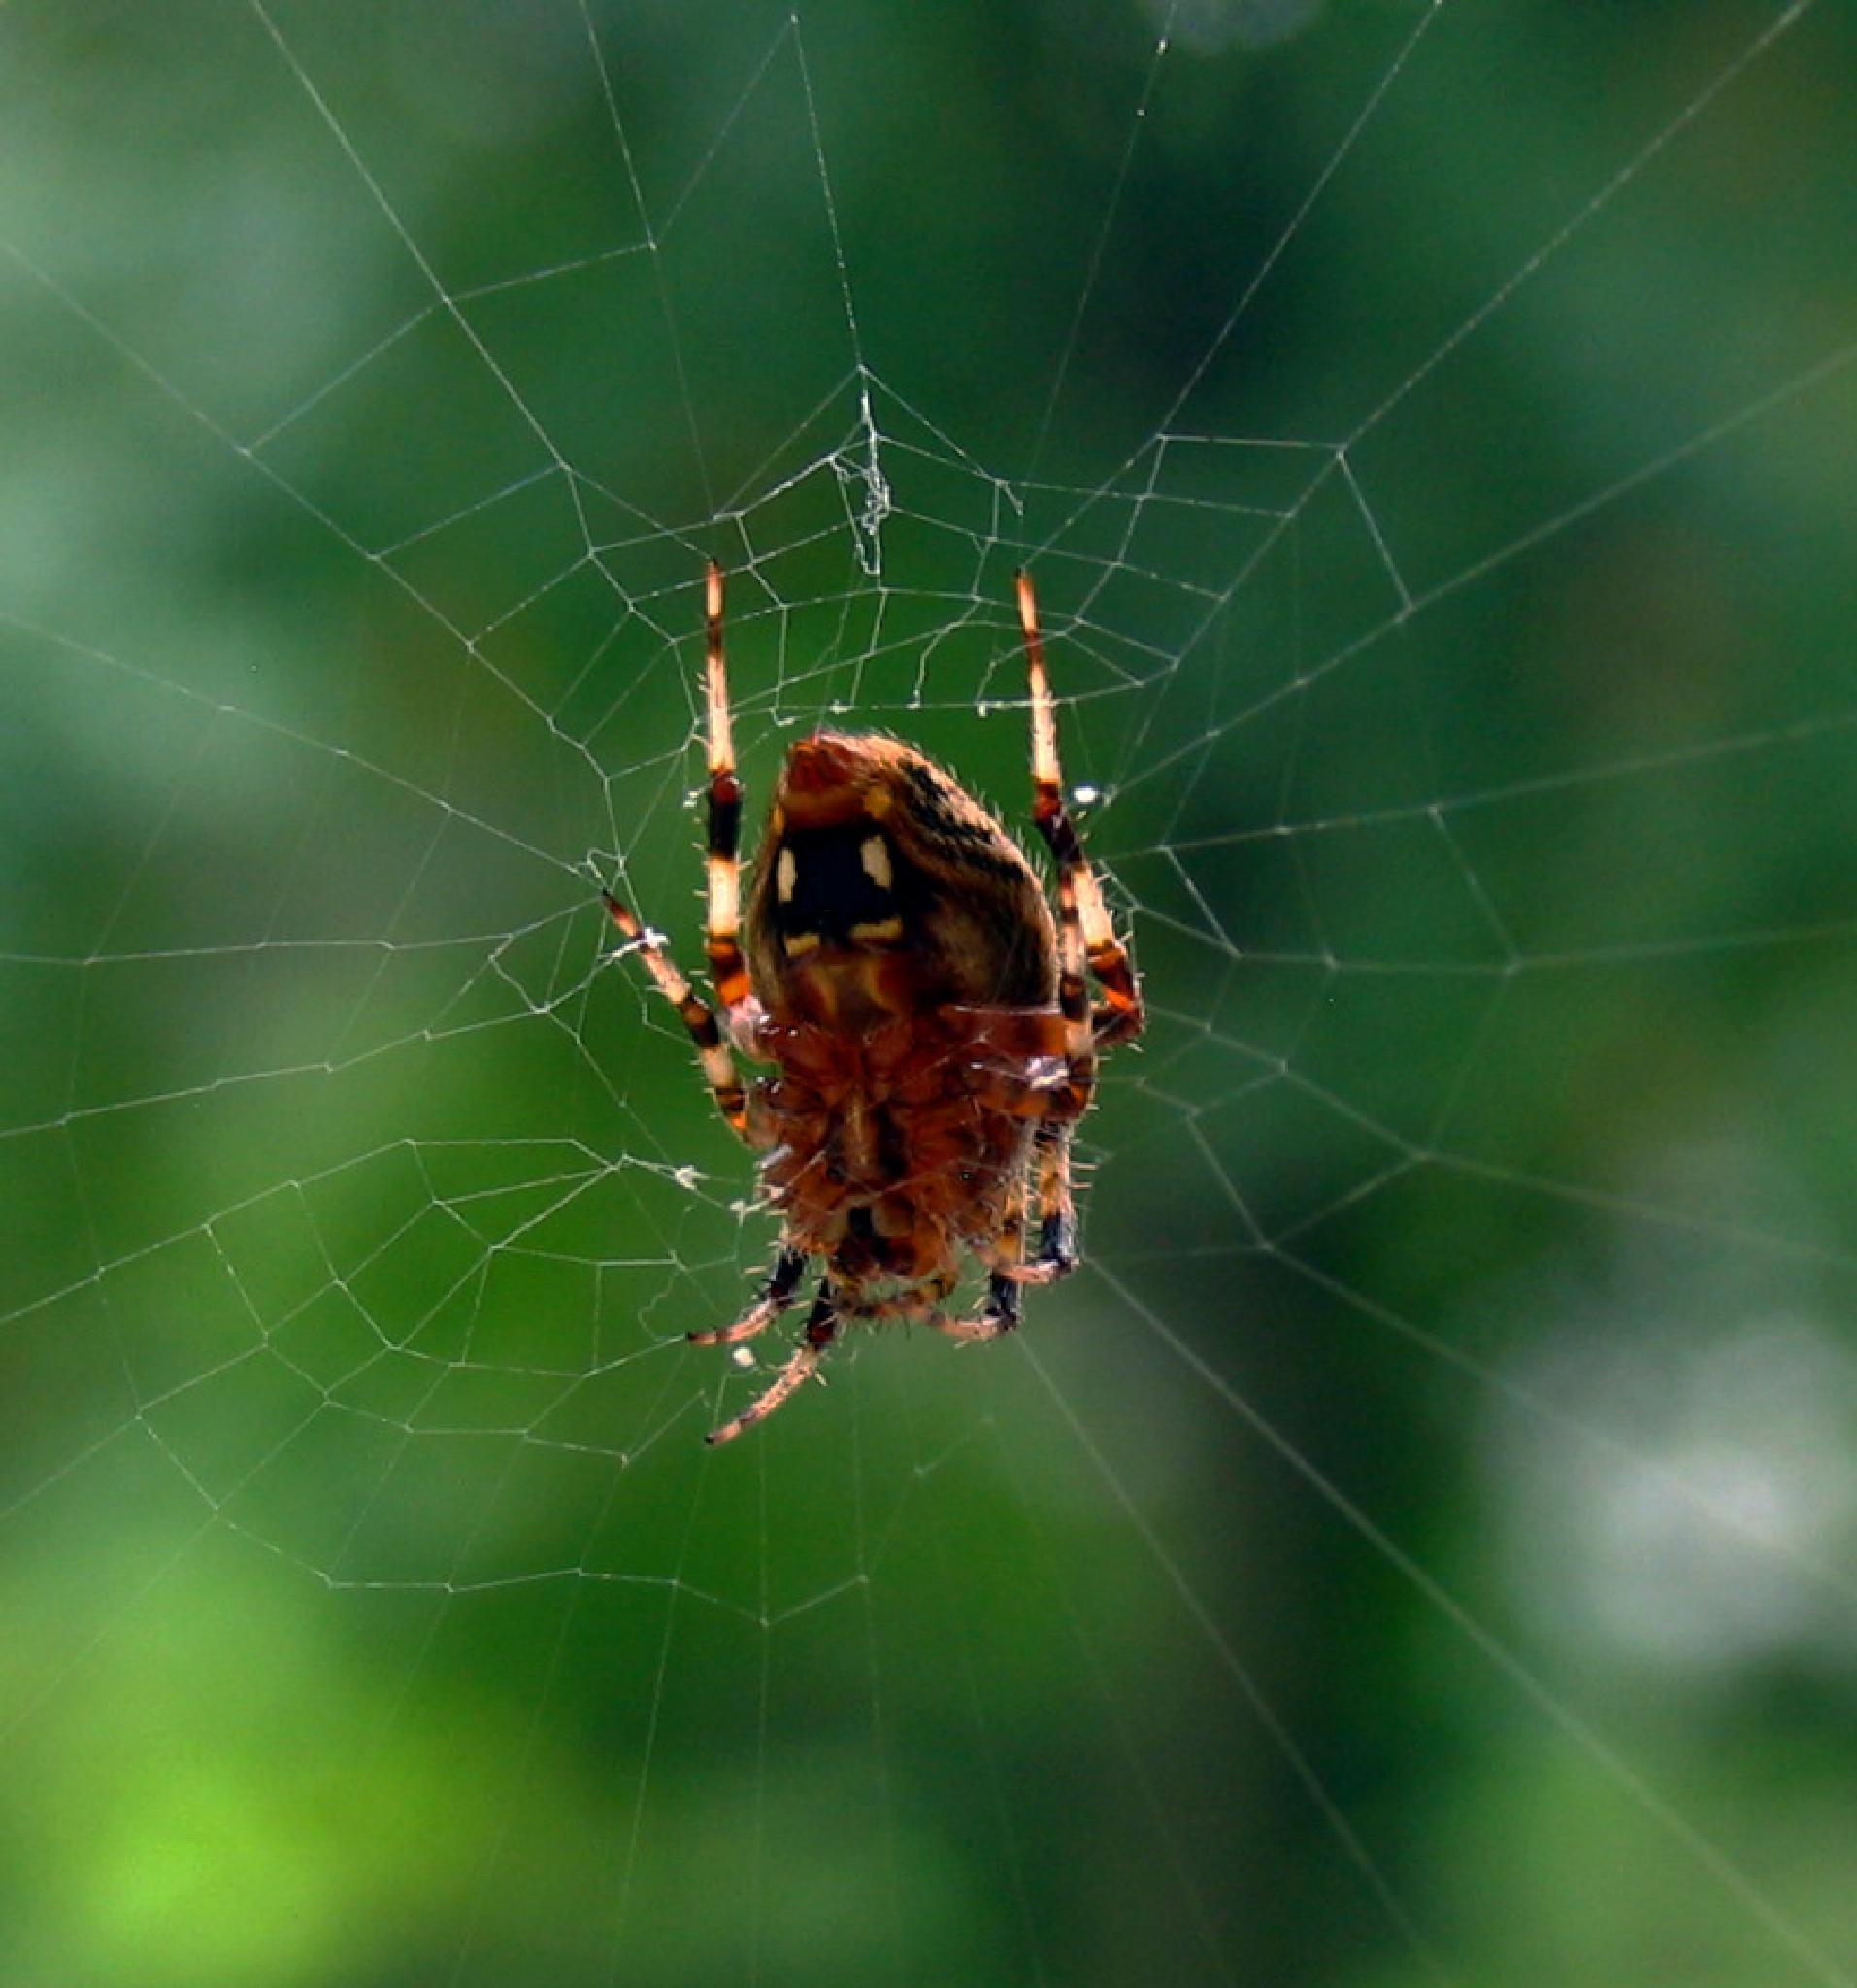 Spider and web by monarch